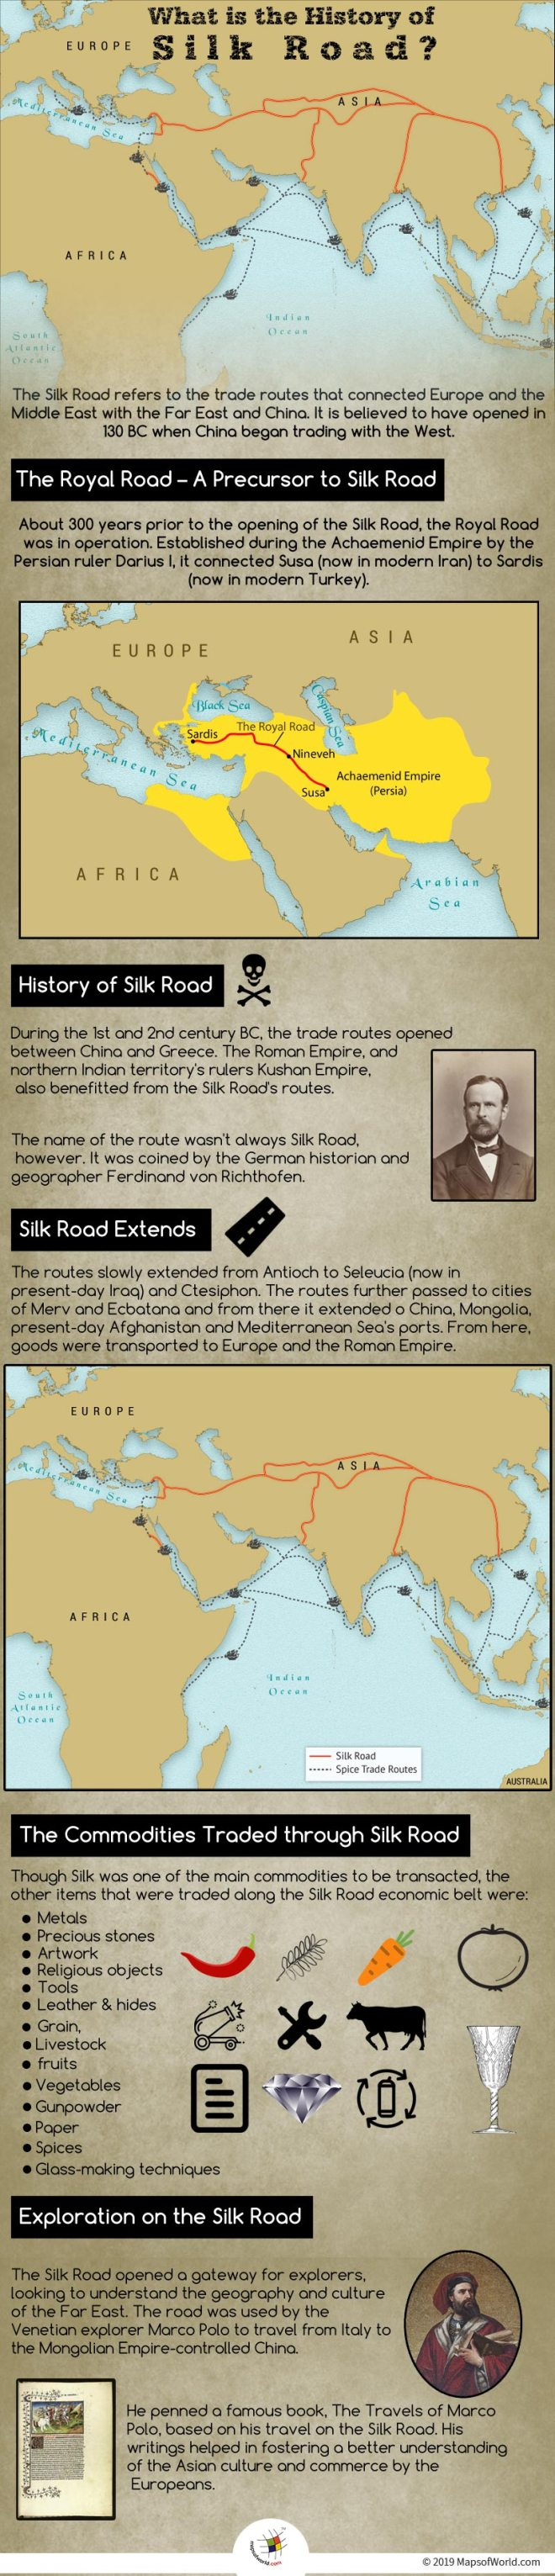 Infographic Showing The History of Silk Road